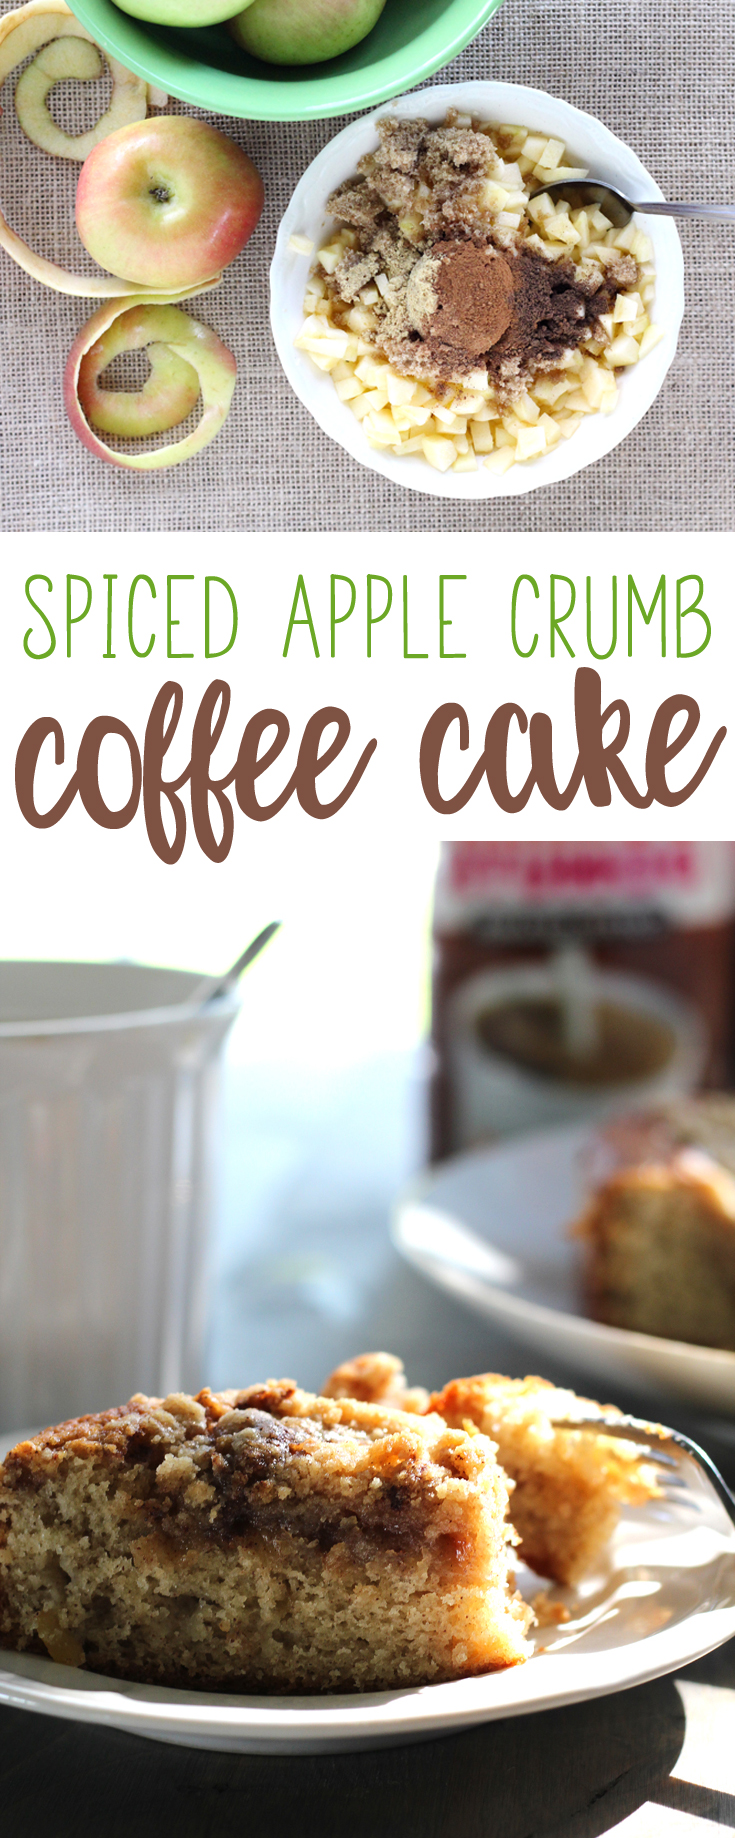 Spiced Apple Crumb Coffee Cake is a prefect fall recipe. Full of cinnamon and spice, moist cake and crumble topping. Enjoy with coffee, of course. #coffeecake